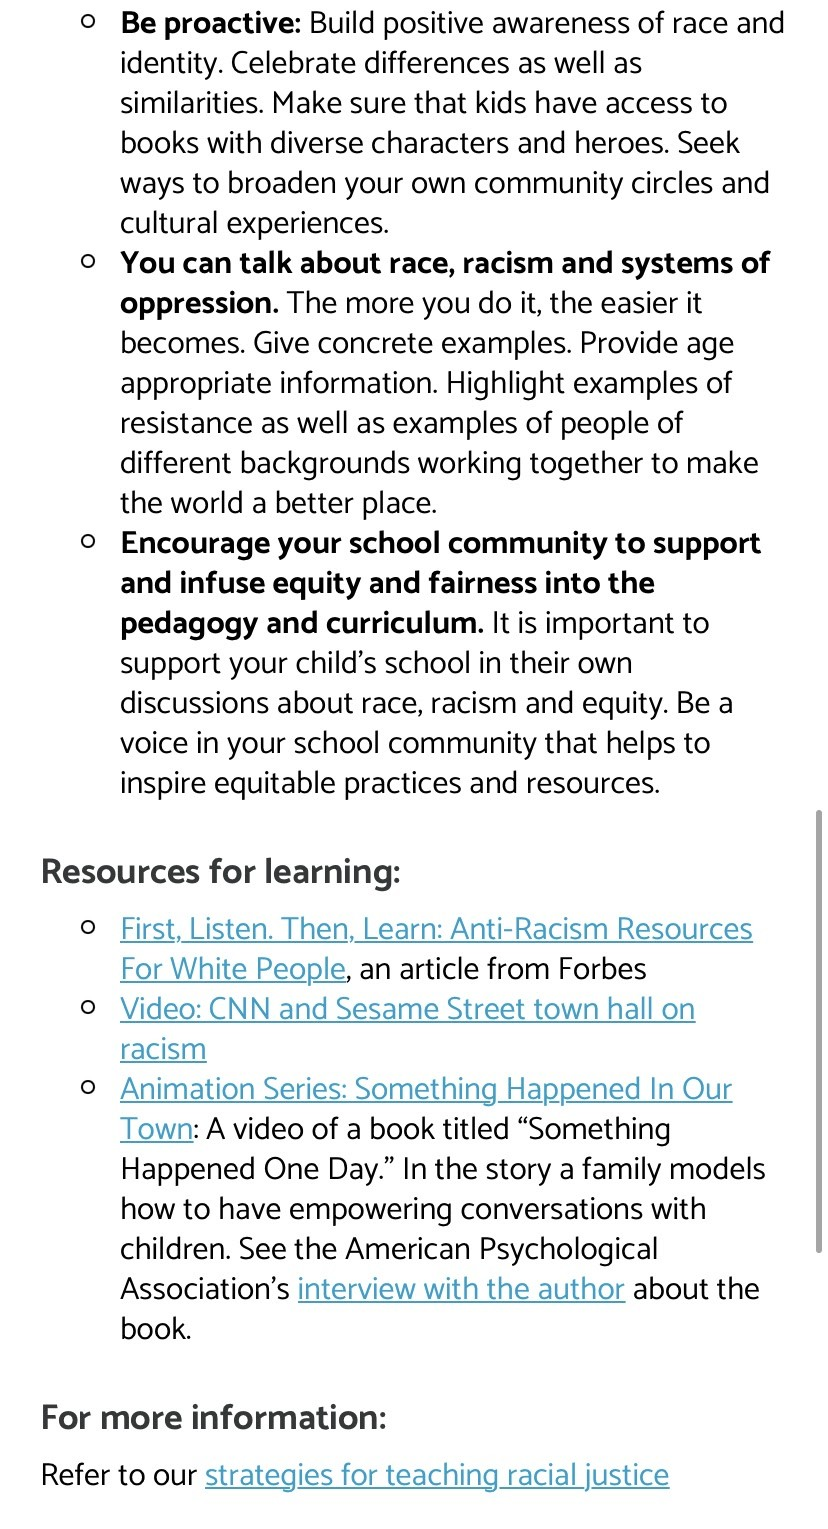 """Alexandria City Public Schools' """"Talking to your Children about Racial Justice"""" page. (Screenshot)."""